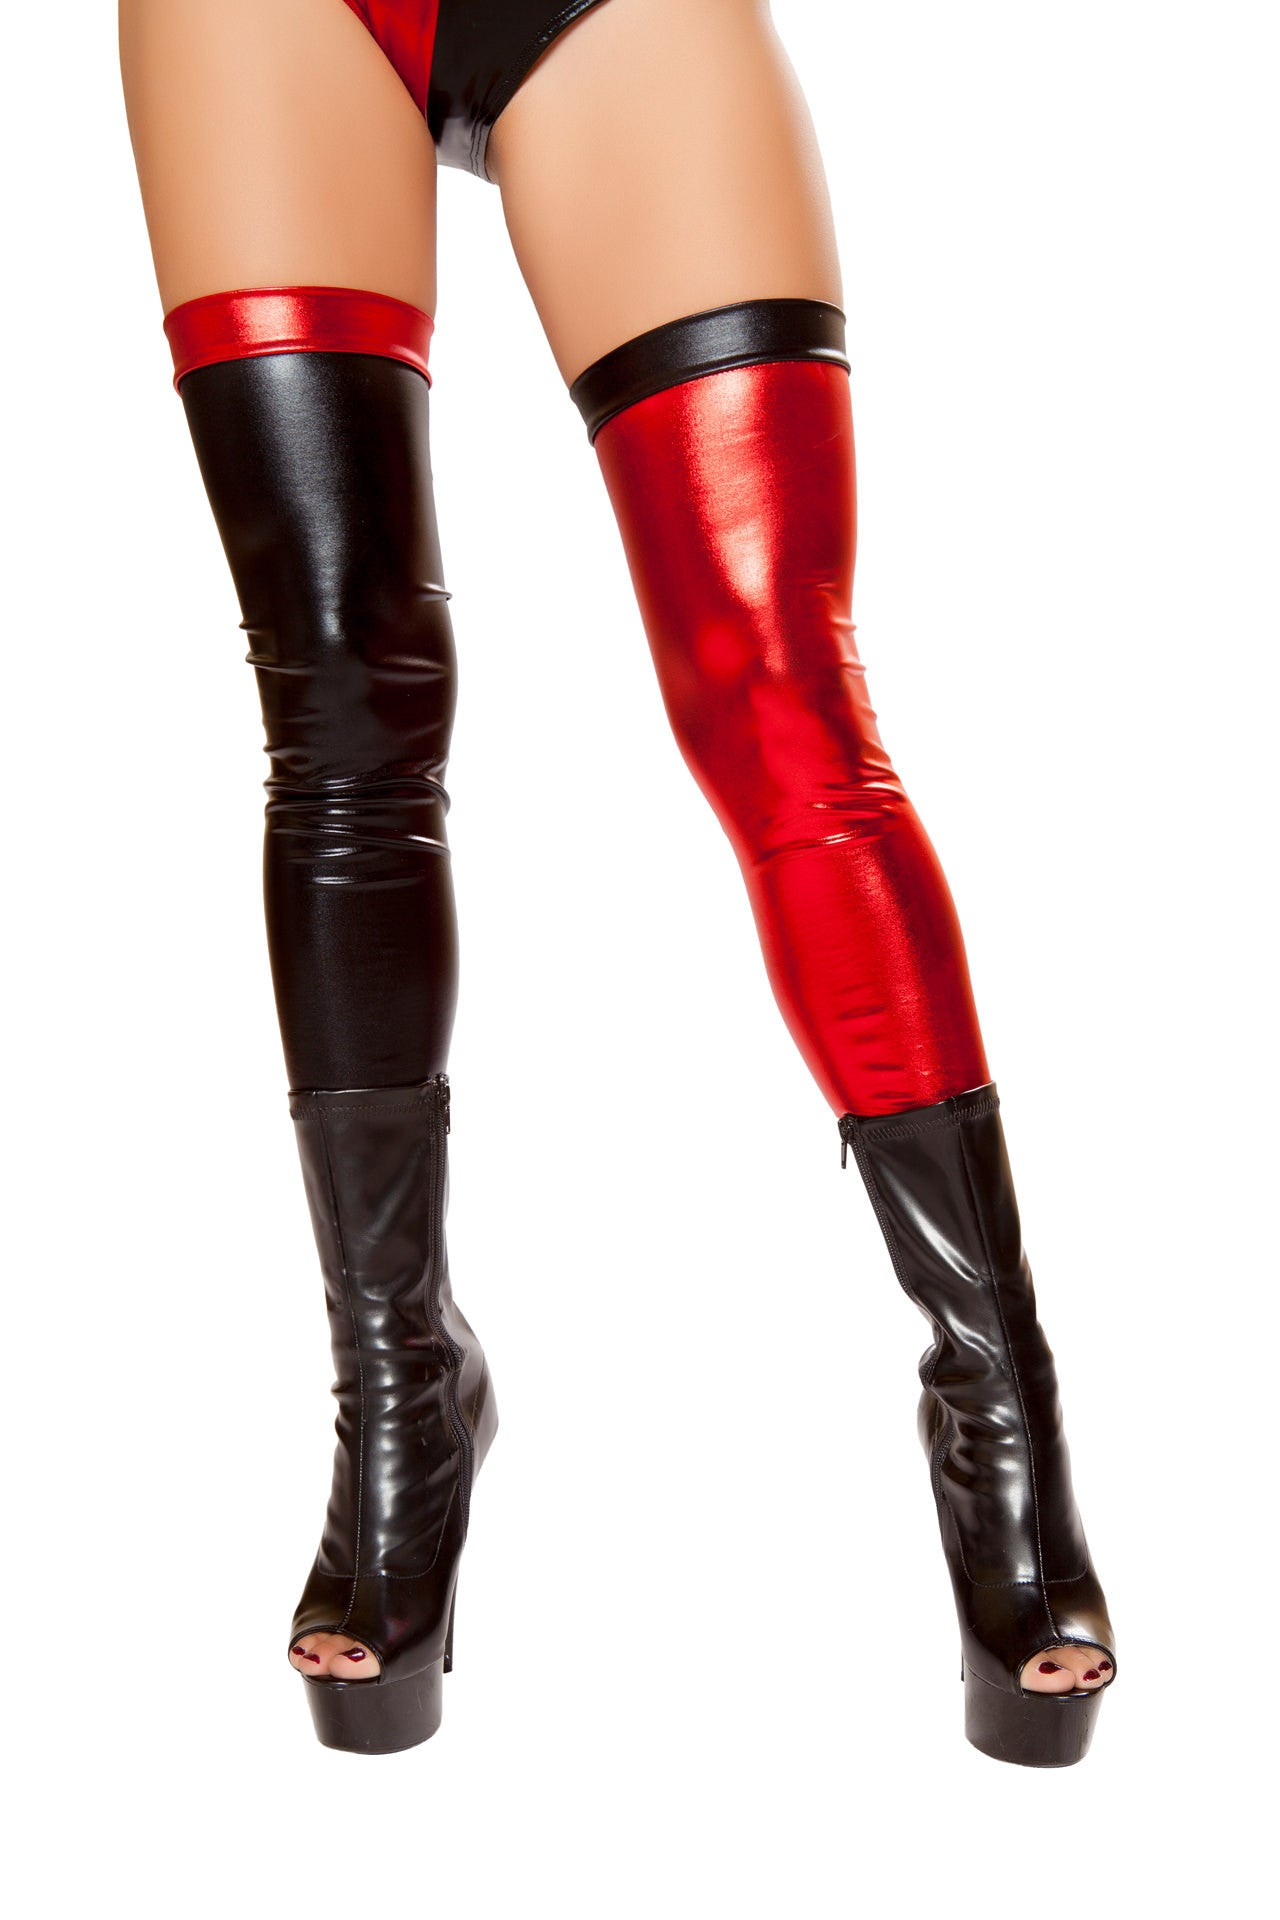 Red/Black Jester Leggings - PlaythingsMiami